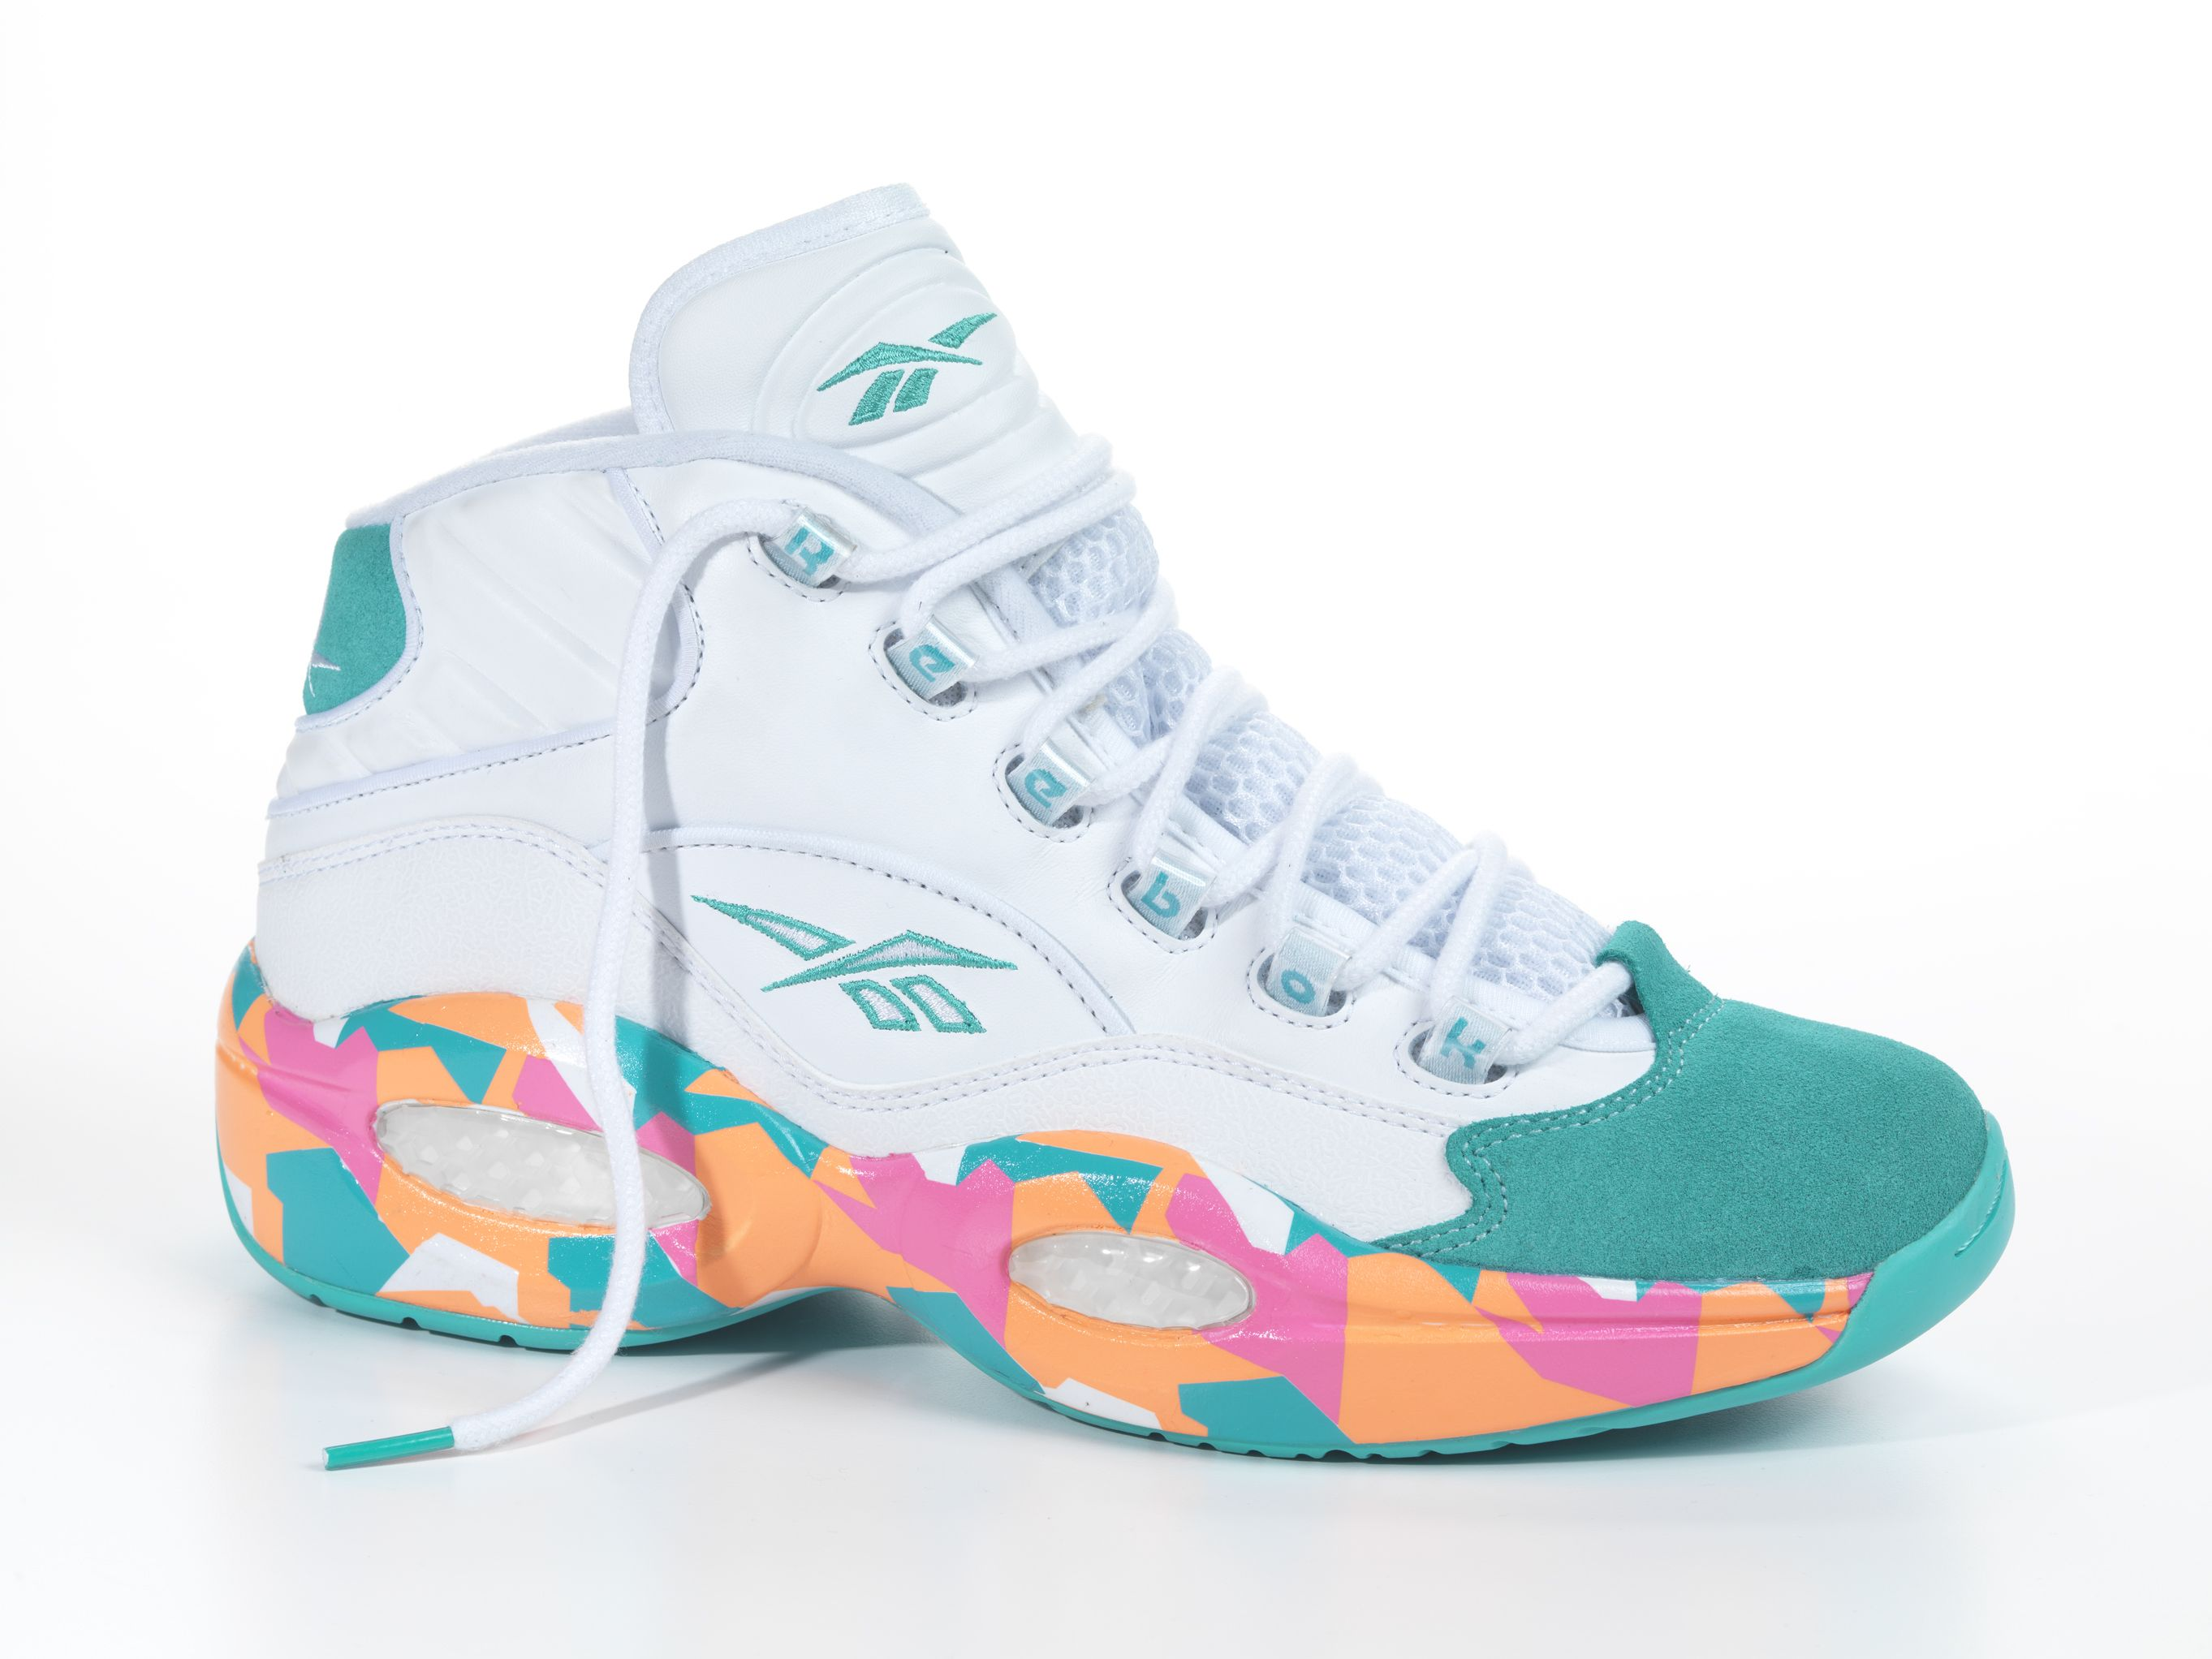 f5a72a96cde4 The new Allen Iverson Reeboks are so hideous they are beautiful